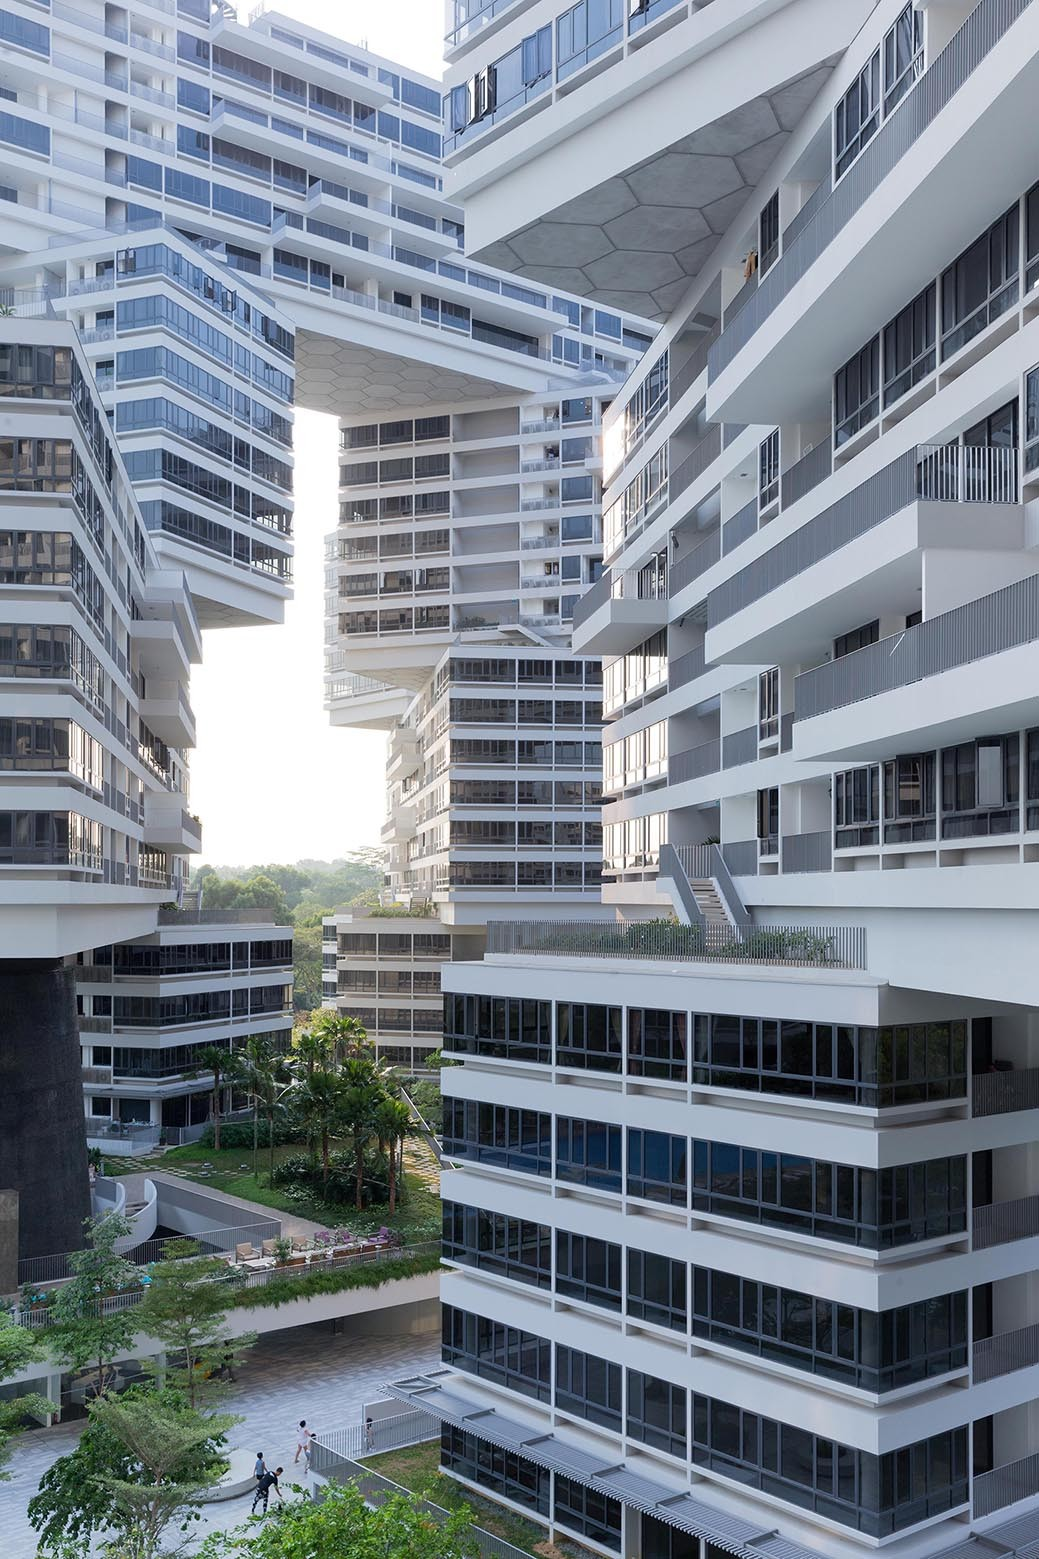 Gallery of the interlace oma ole scheeren 7 for Blau hotels oficinas centrales